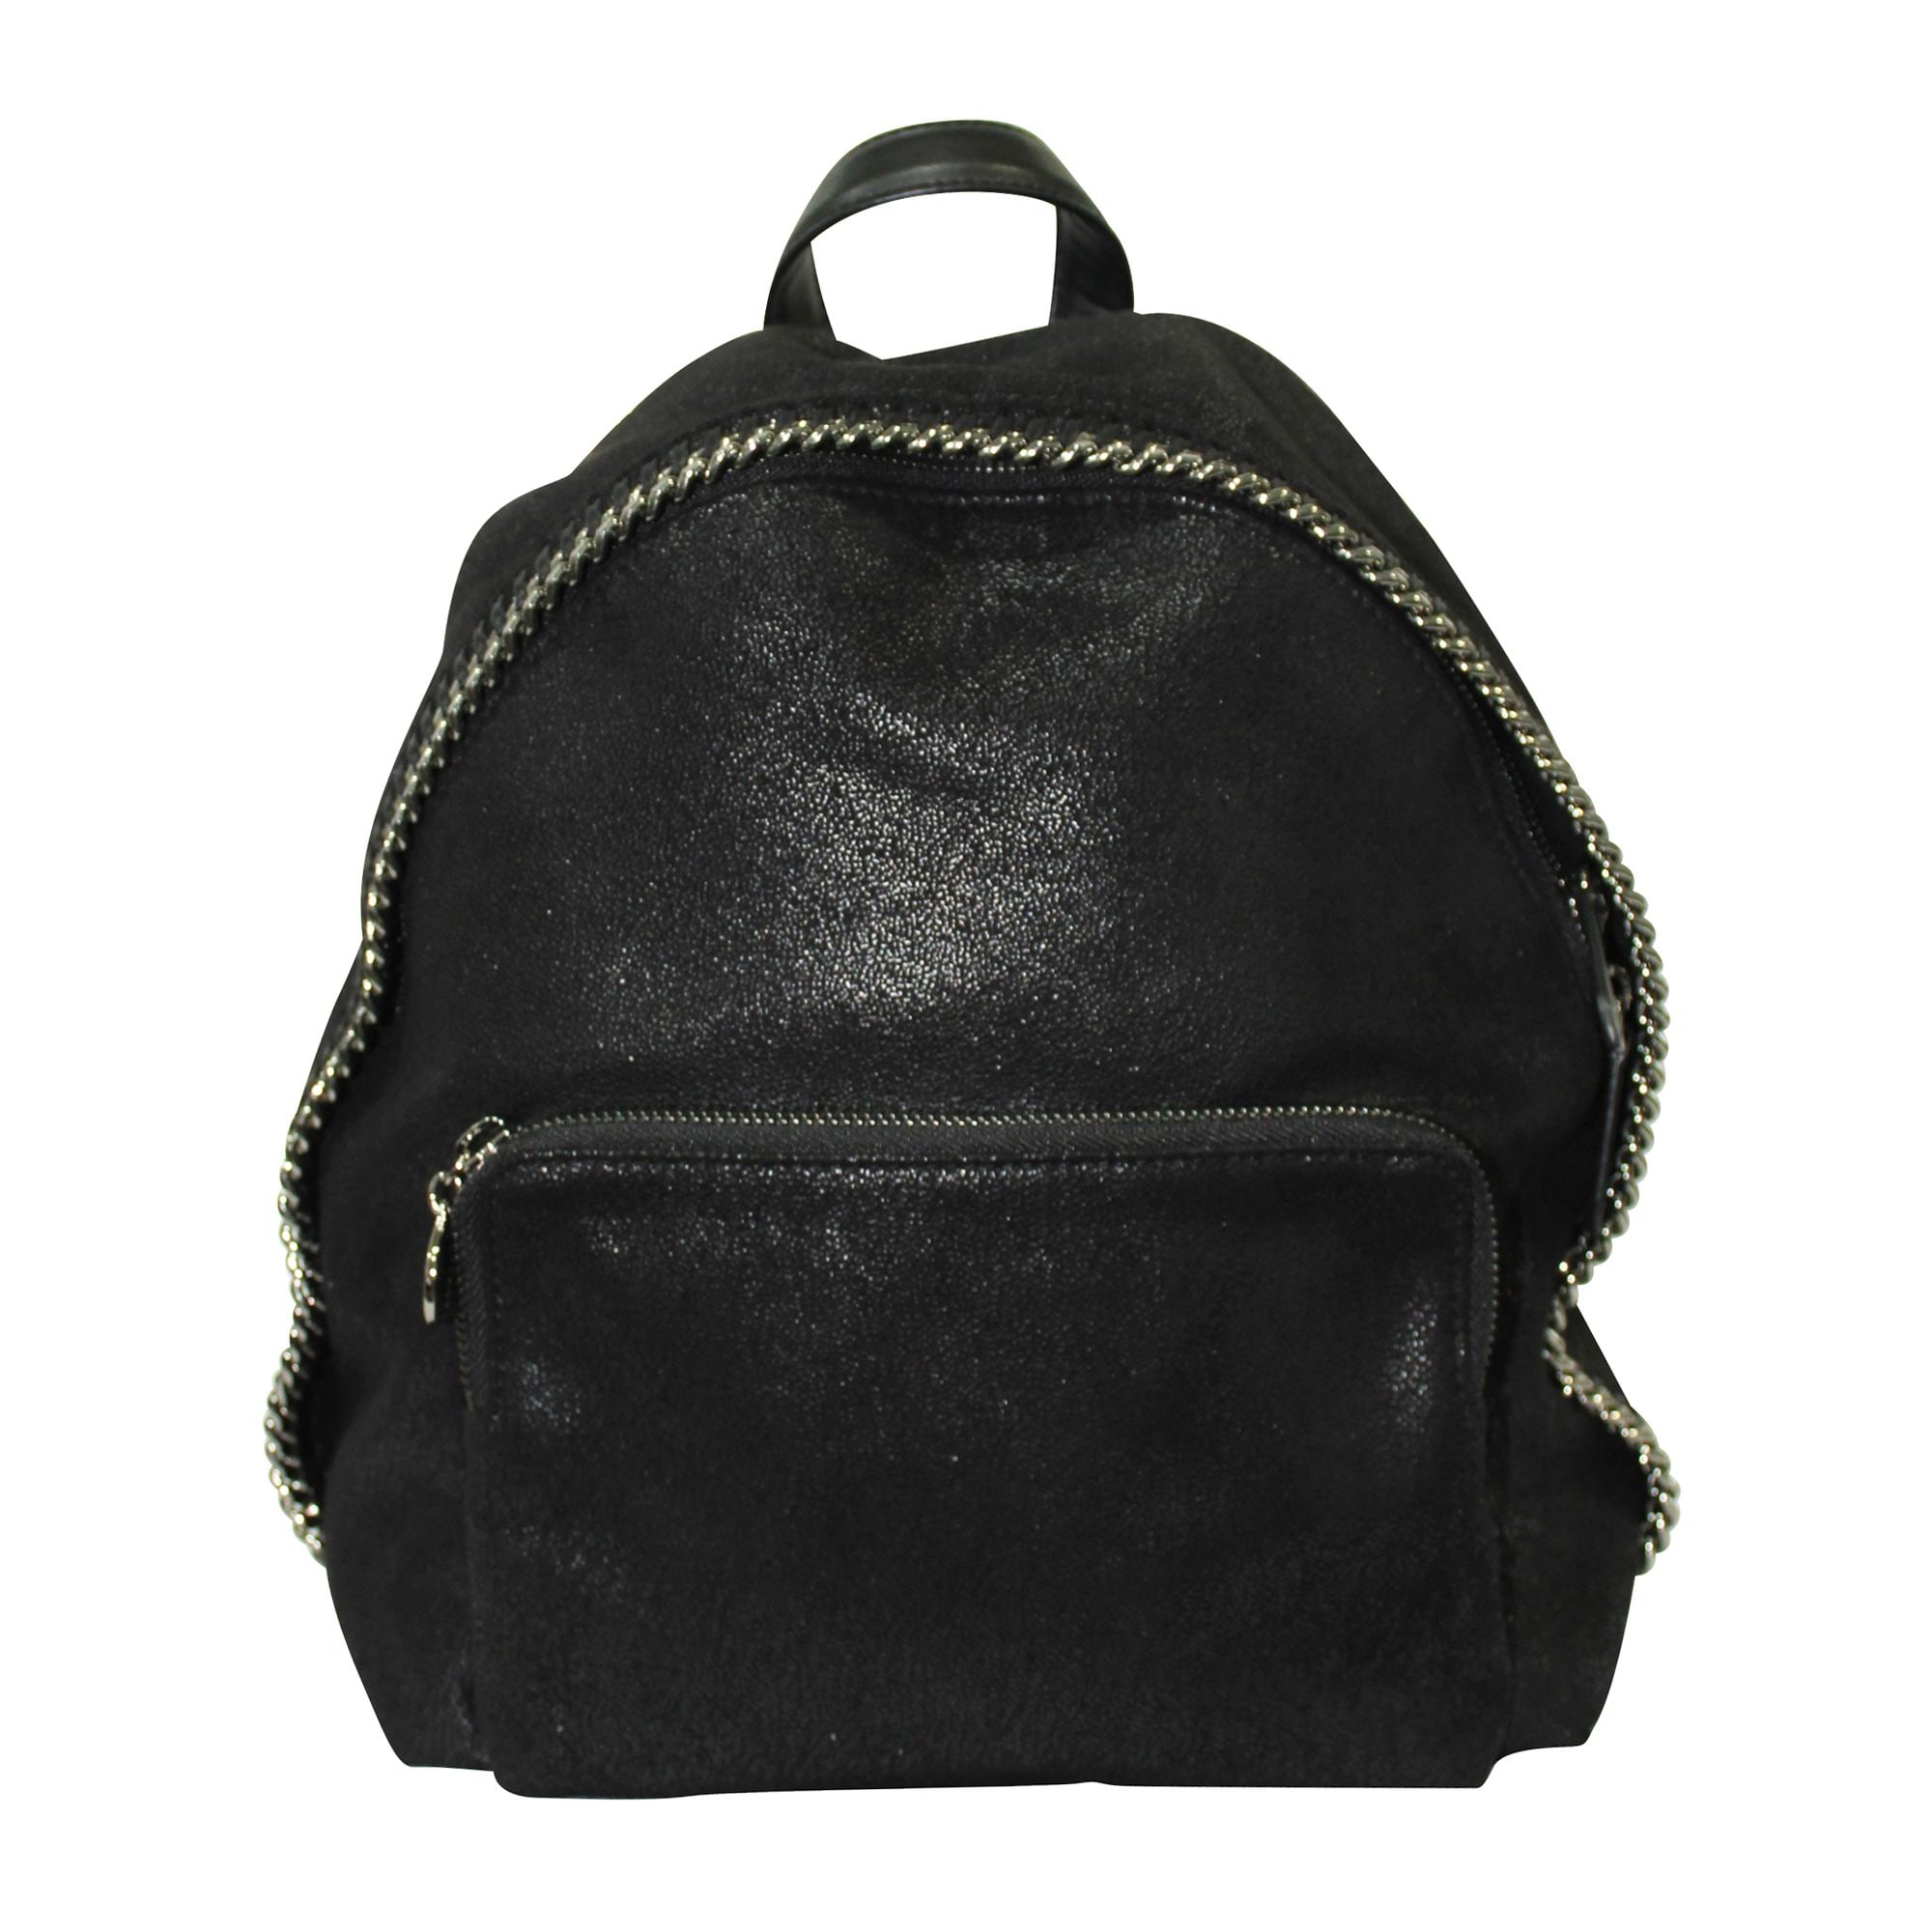 Sac à main en cuir STELLA MCCARTNEY Noir